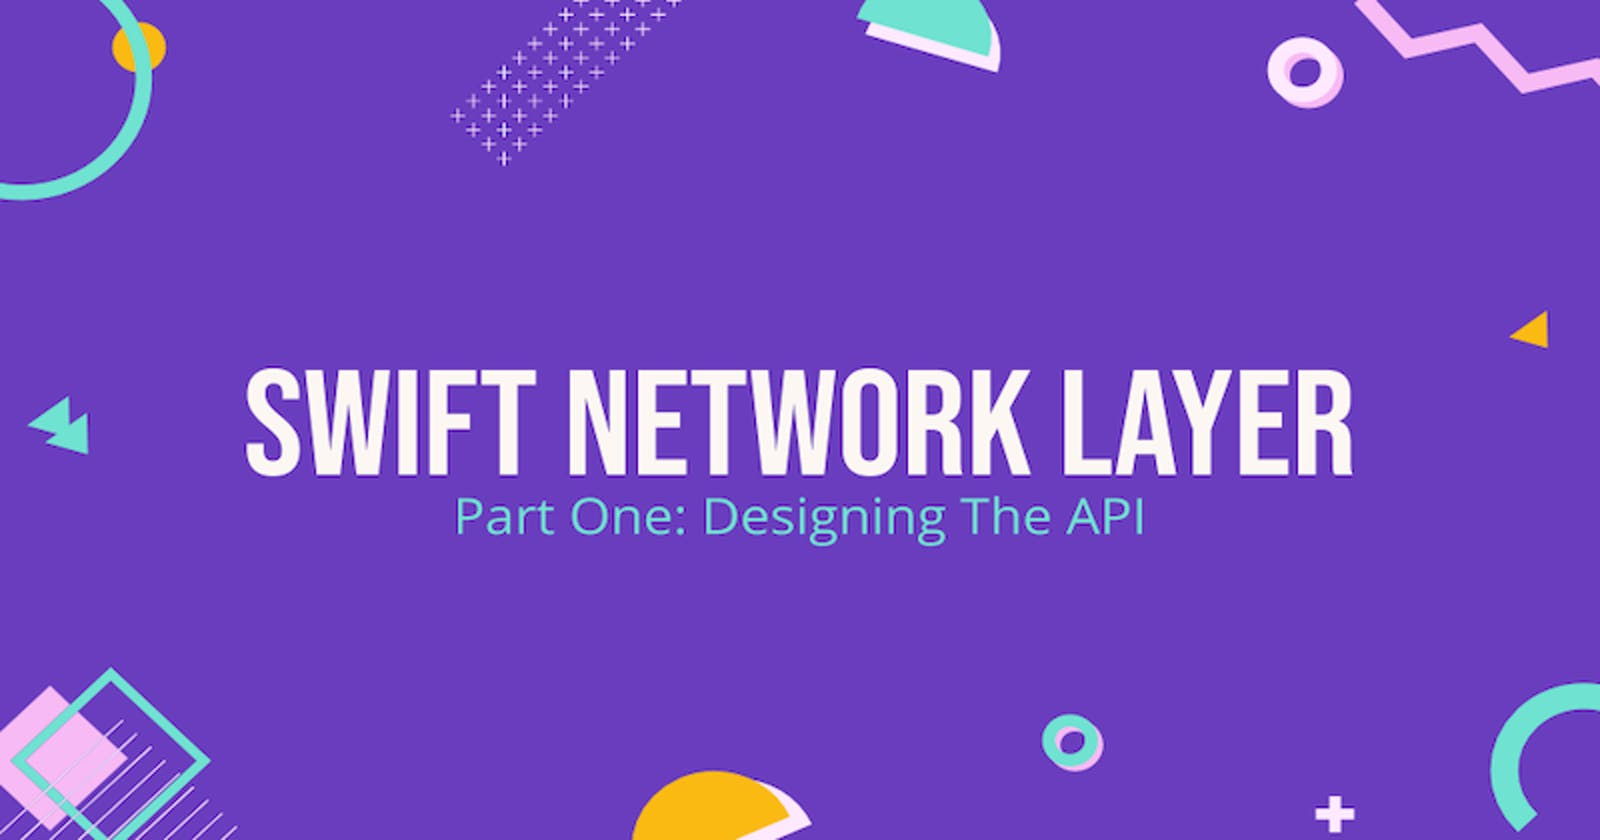 Swift Network Layer, Part 1: Designing The API